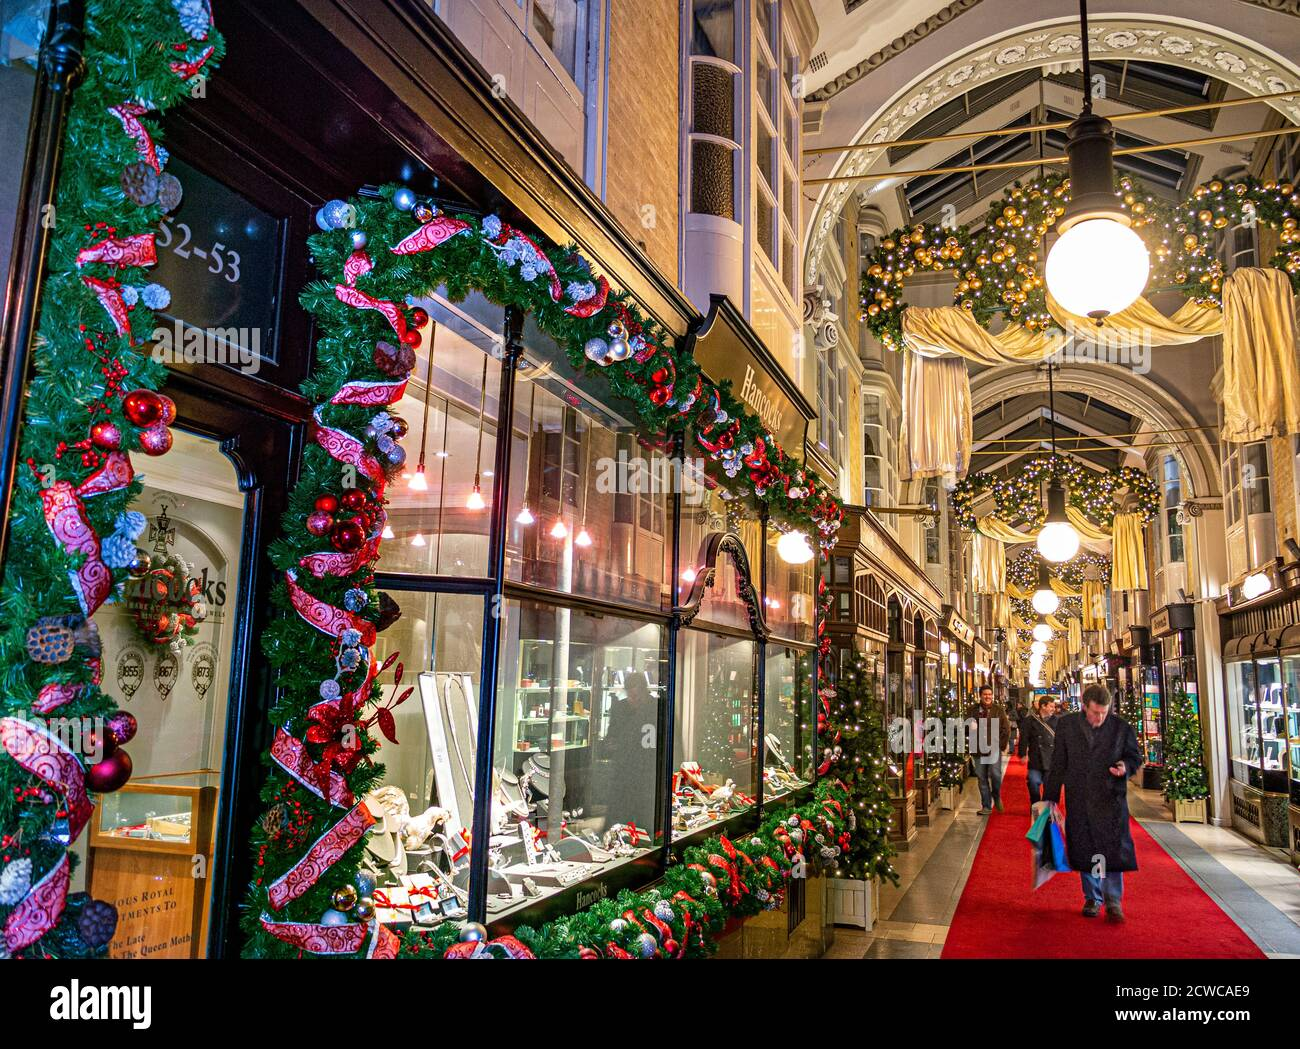 LONDON CHRISTMAS Burlington shopping arcade in Piccadilly with traditional Christmas festive decorations and Christmas shoppers shopping in covered luxury retail interior environment London UK Stock Photo